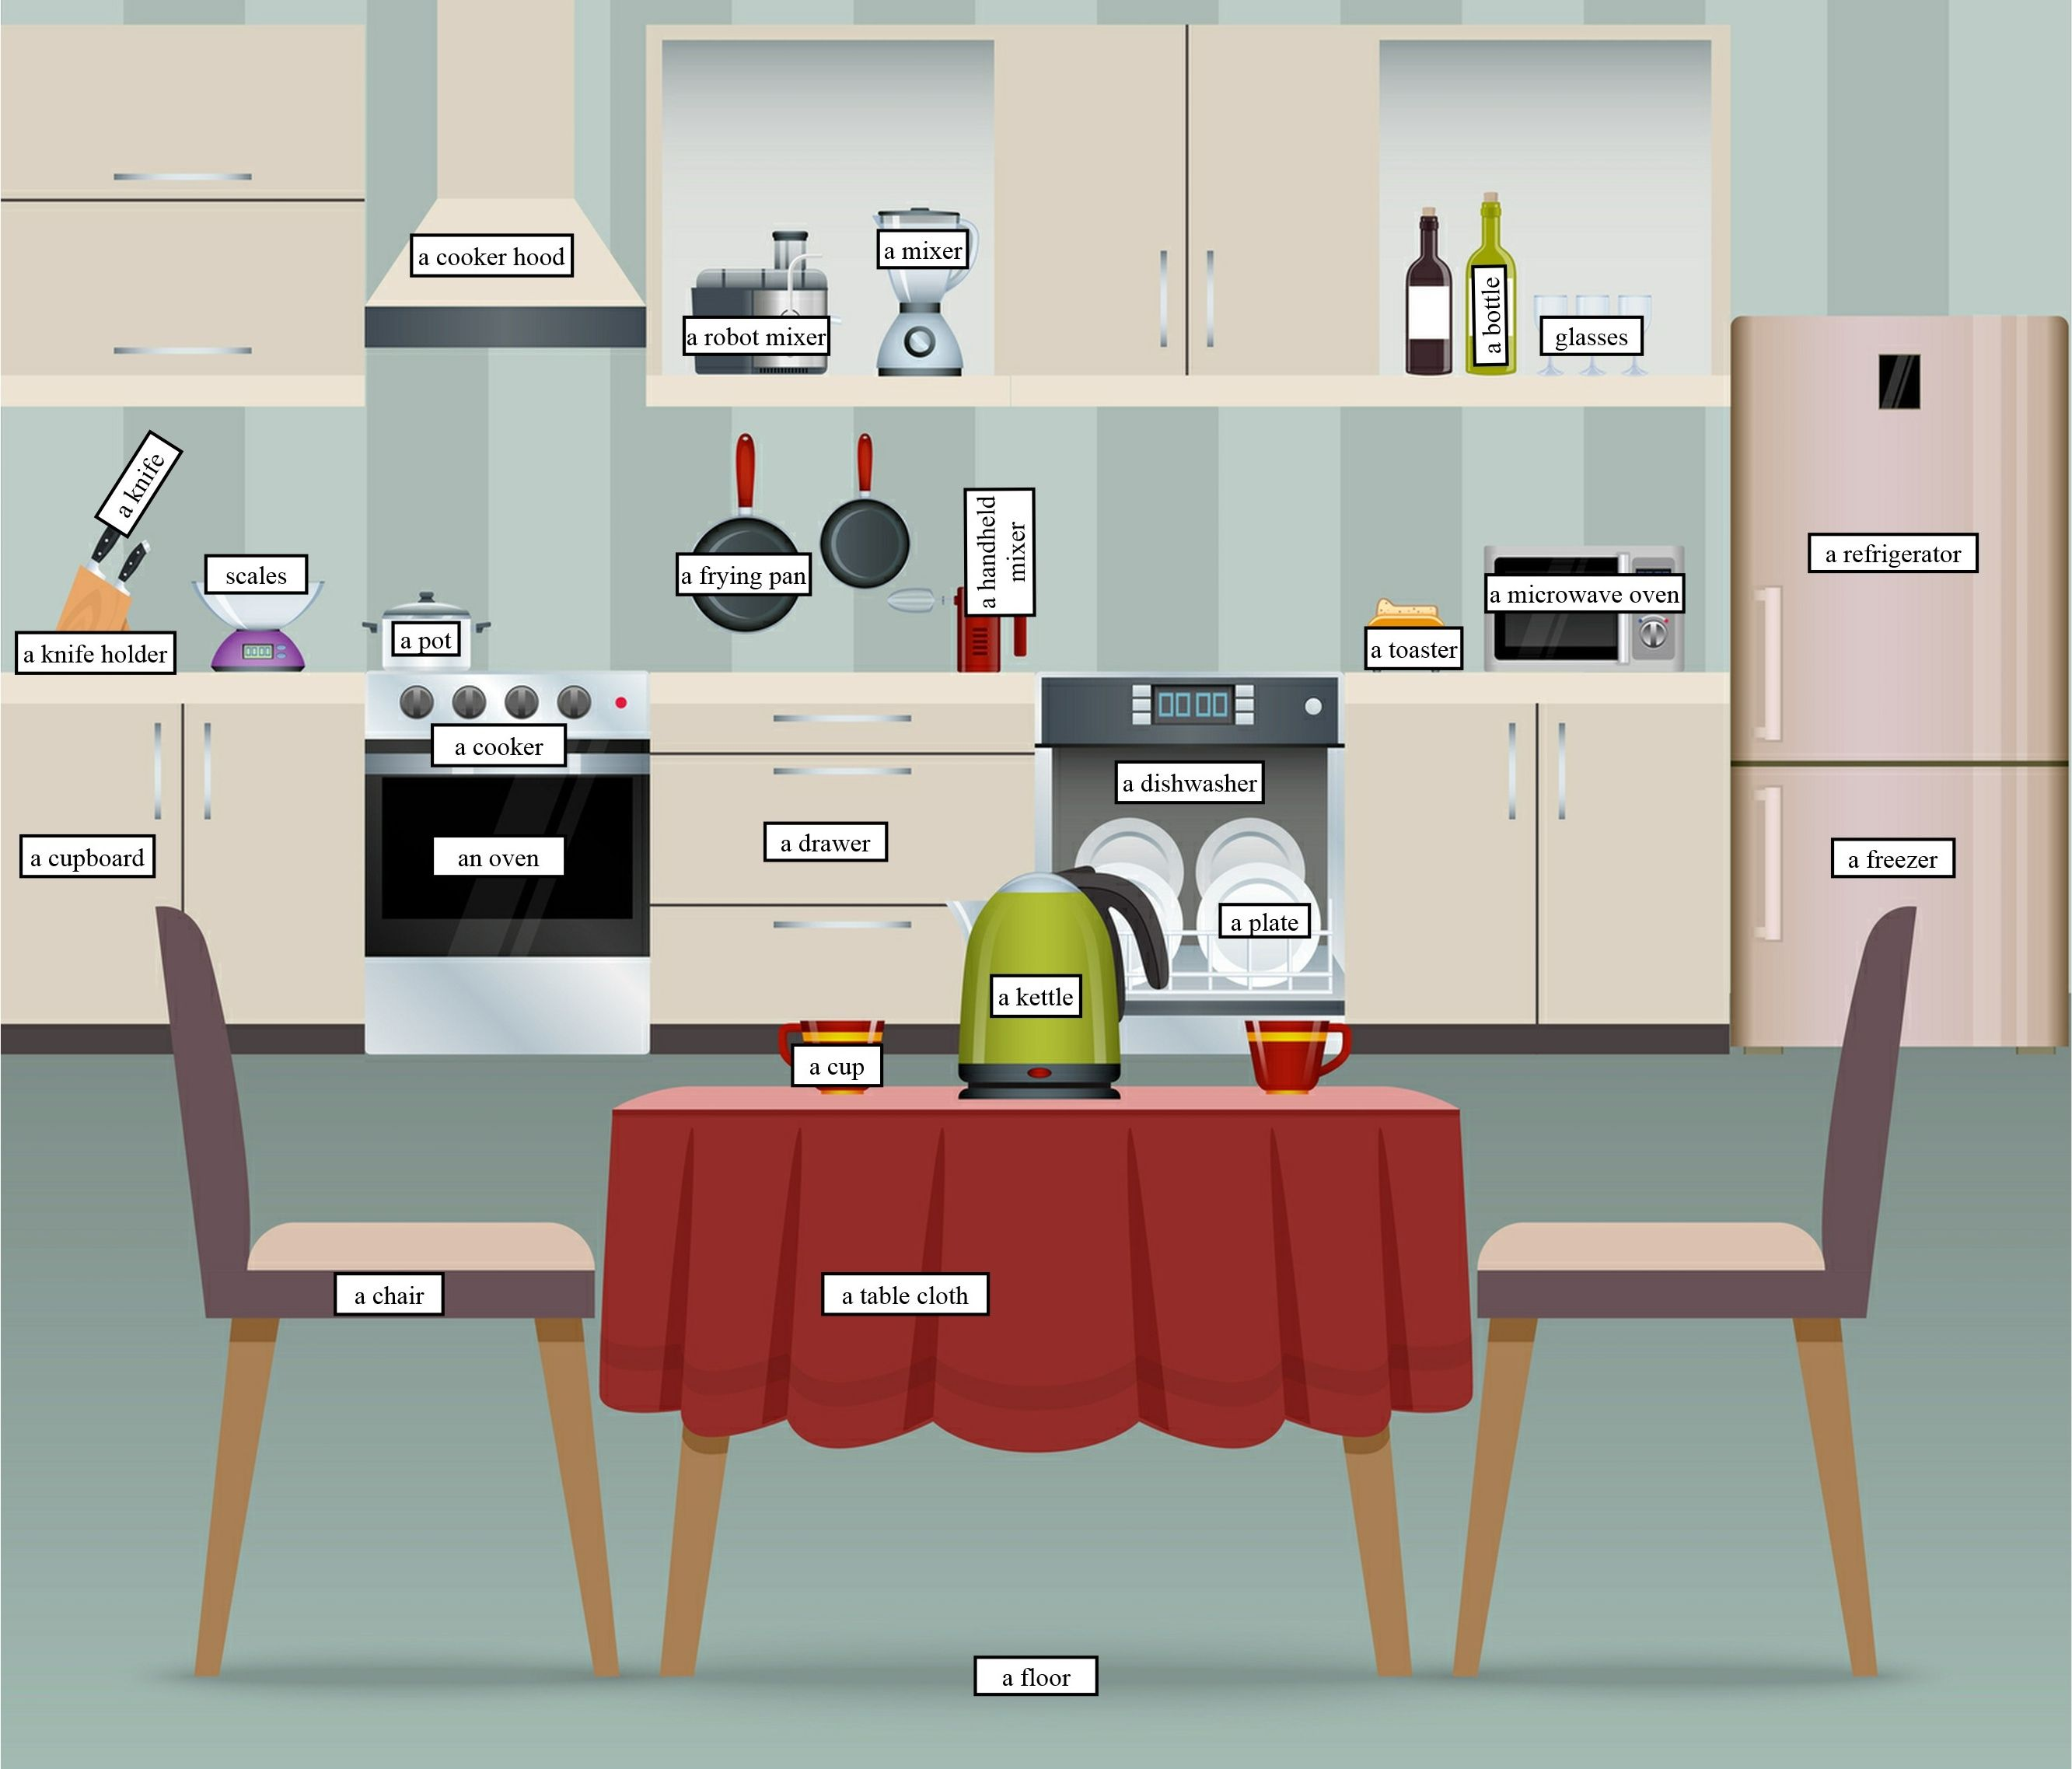 You Can Learn 26 Vocabulary Items Related To Kitchen